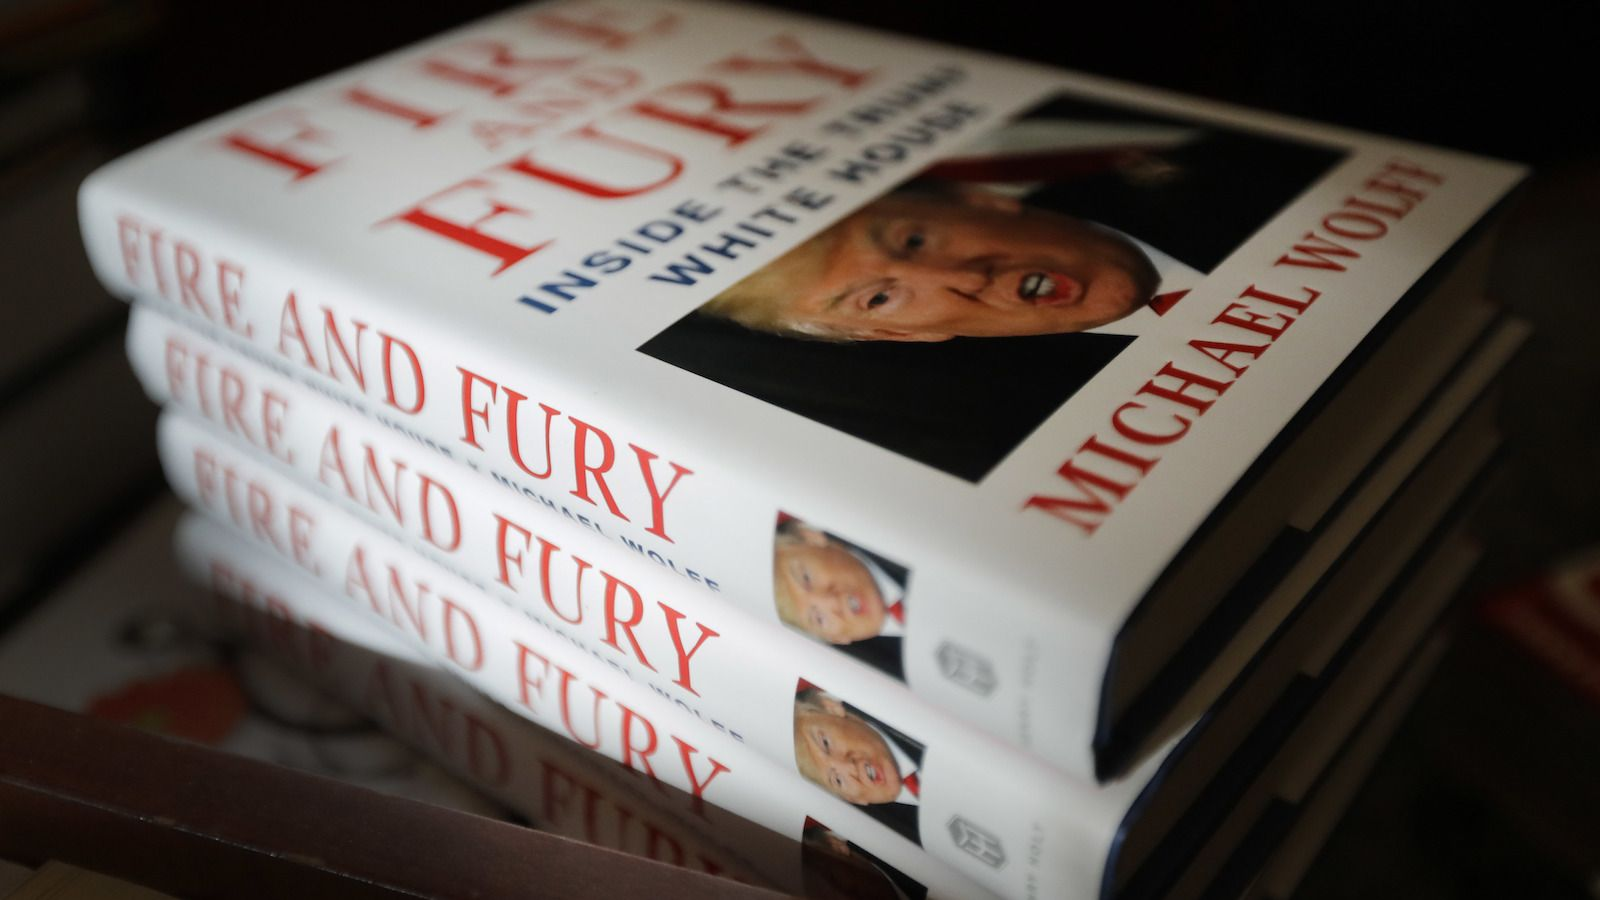 Fire and Fury: Controversy within Trump's Administration?